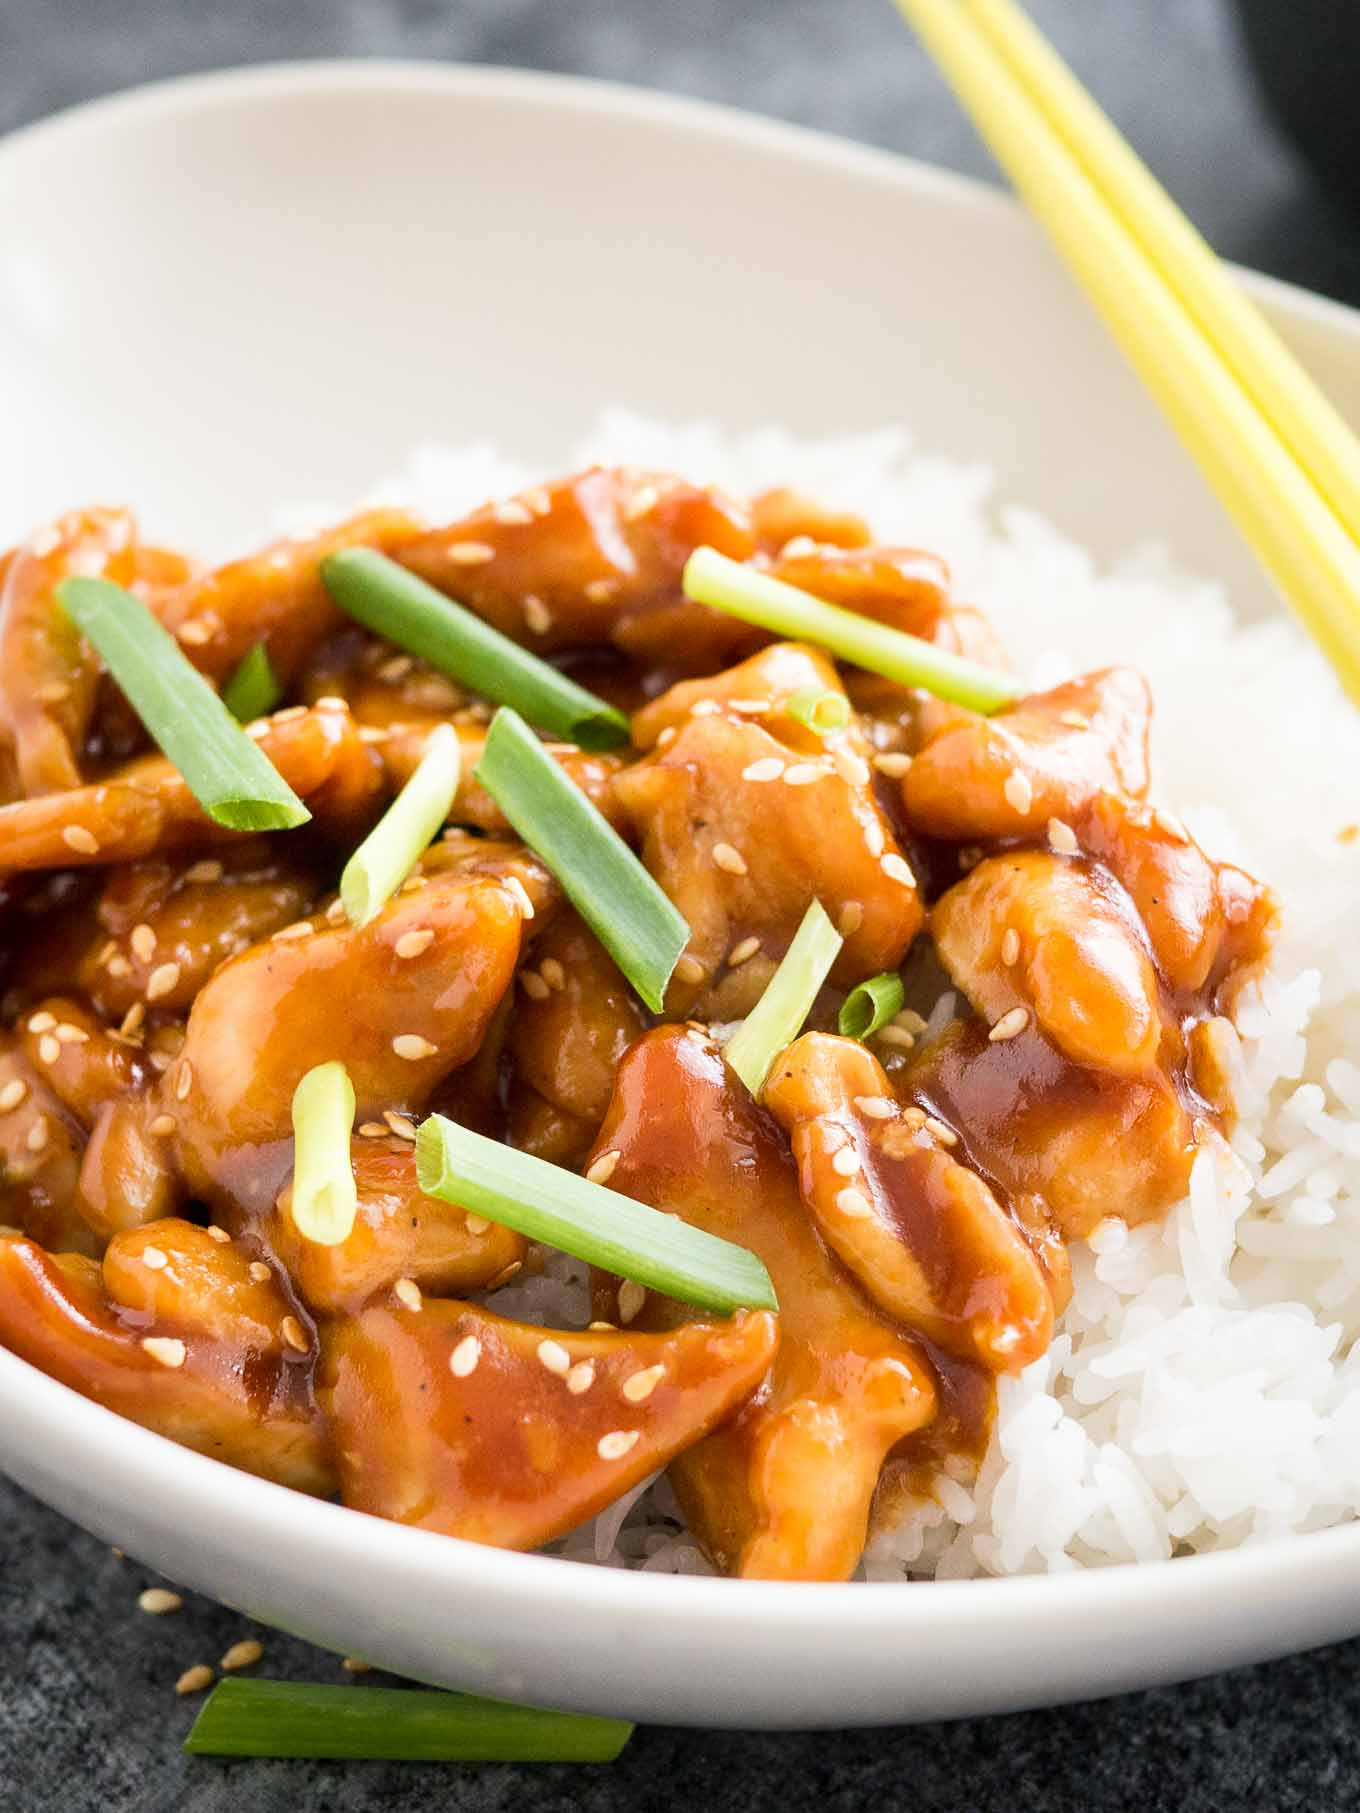 Easy Chinese Food Recipes  Easy Healthy General Tso s Chicken Recipe